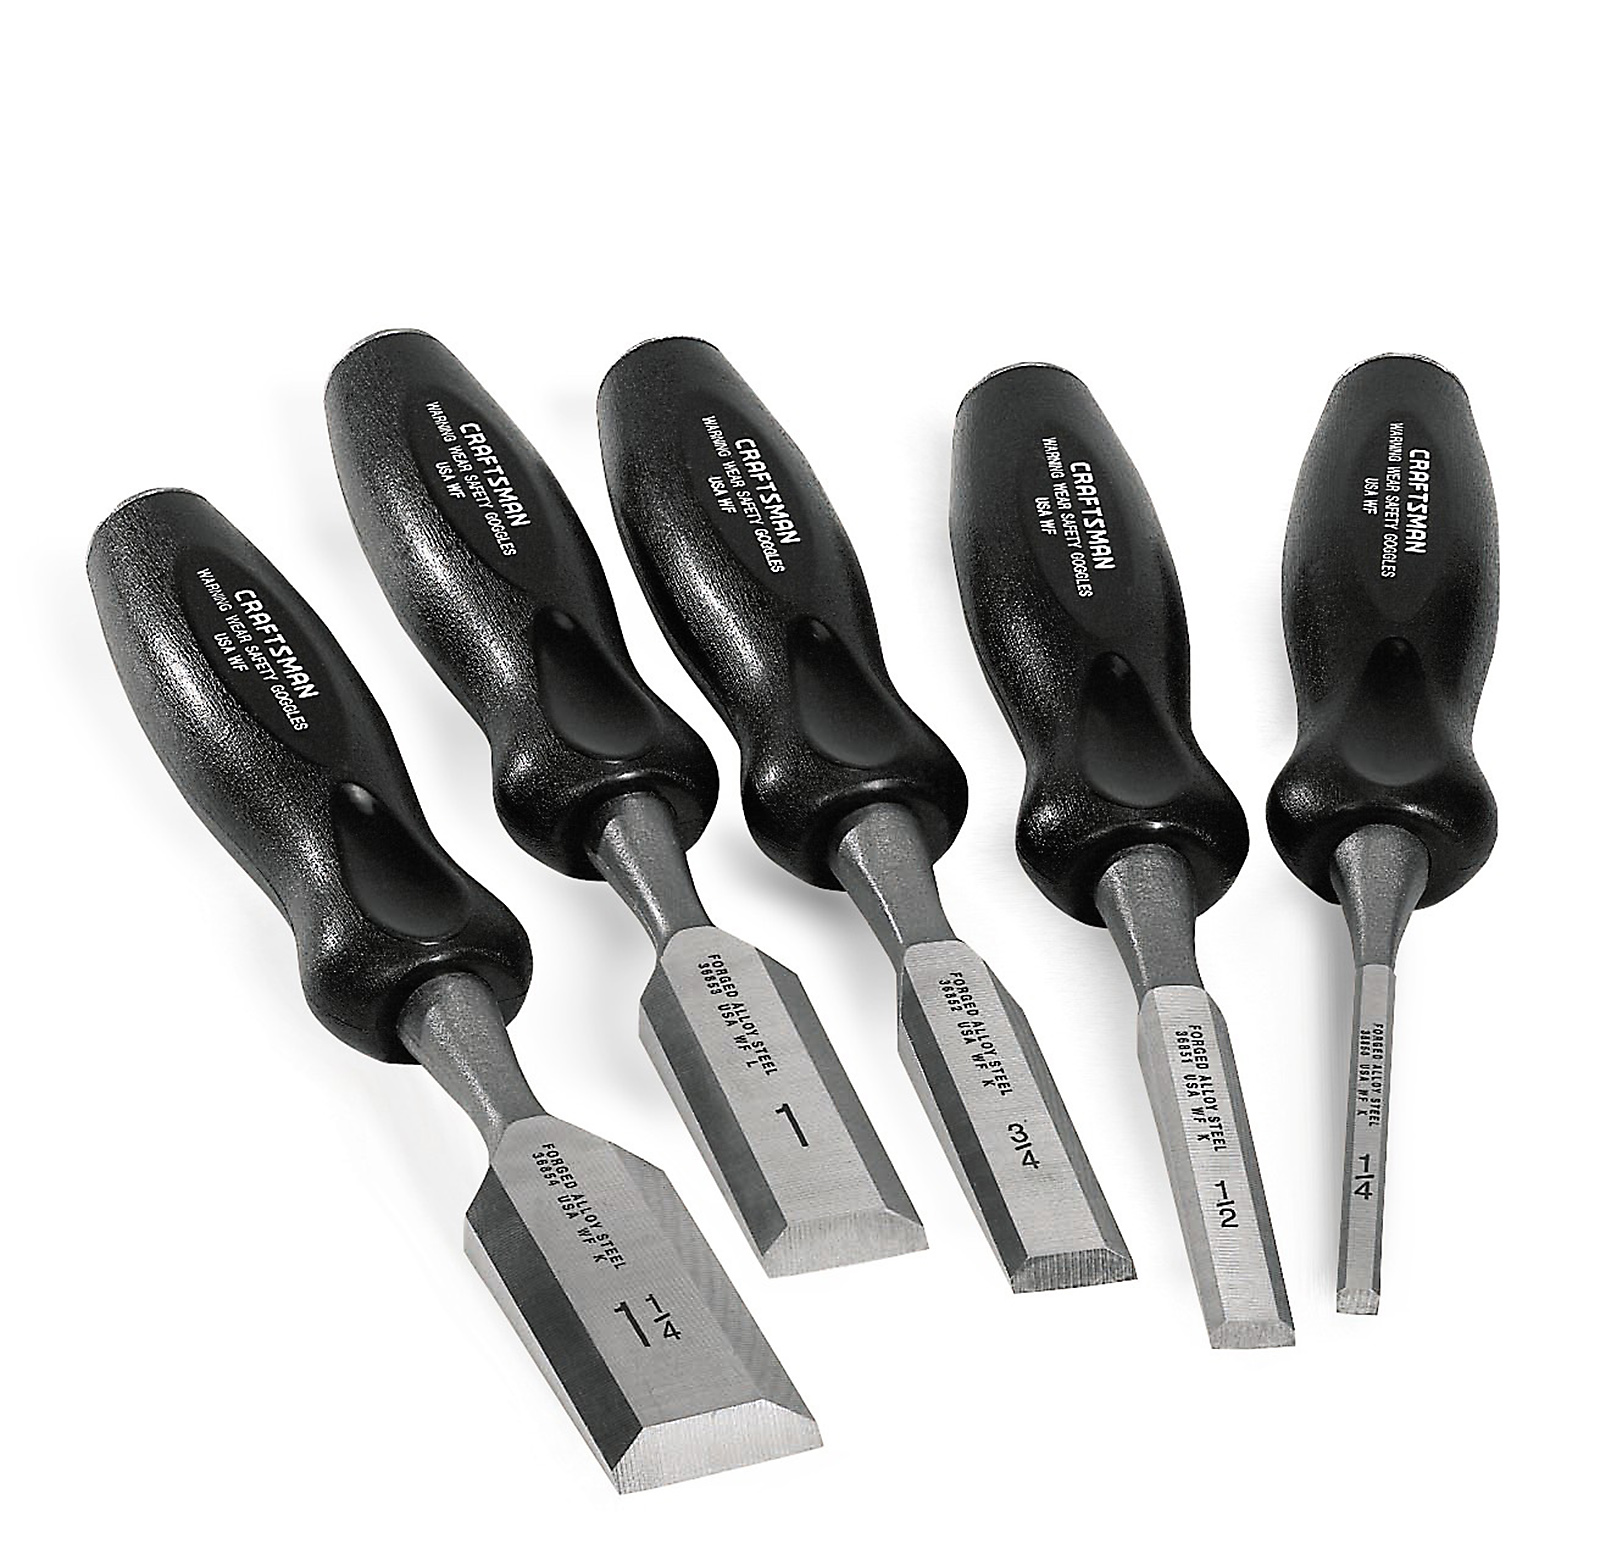 Craftsman 5 pc. Wood Chisel Set